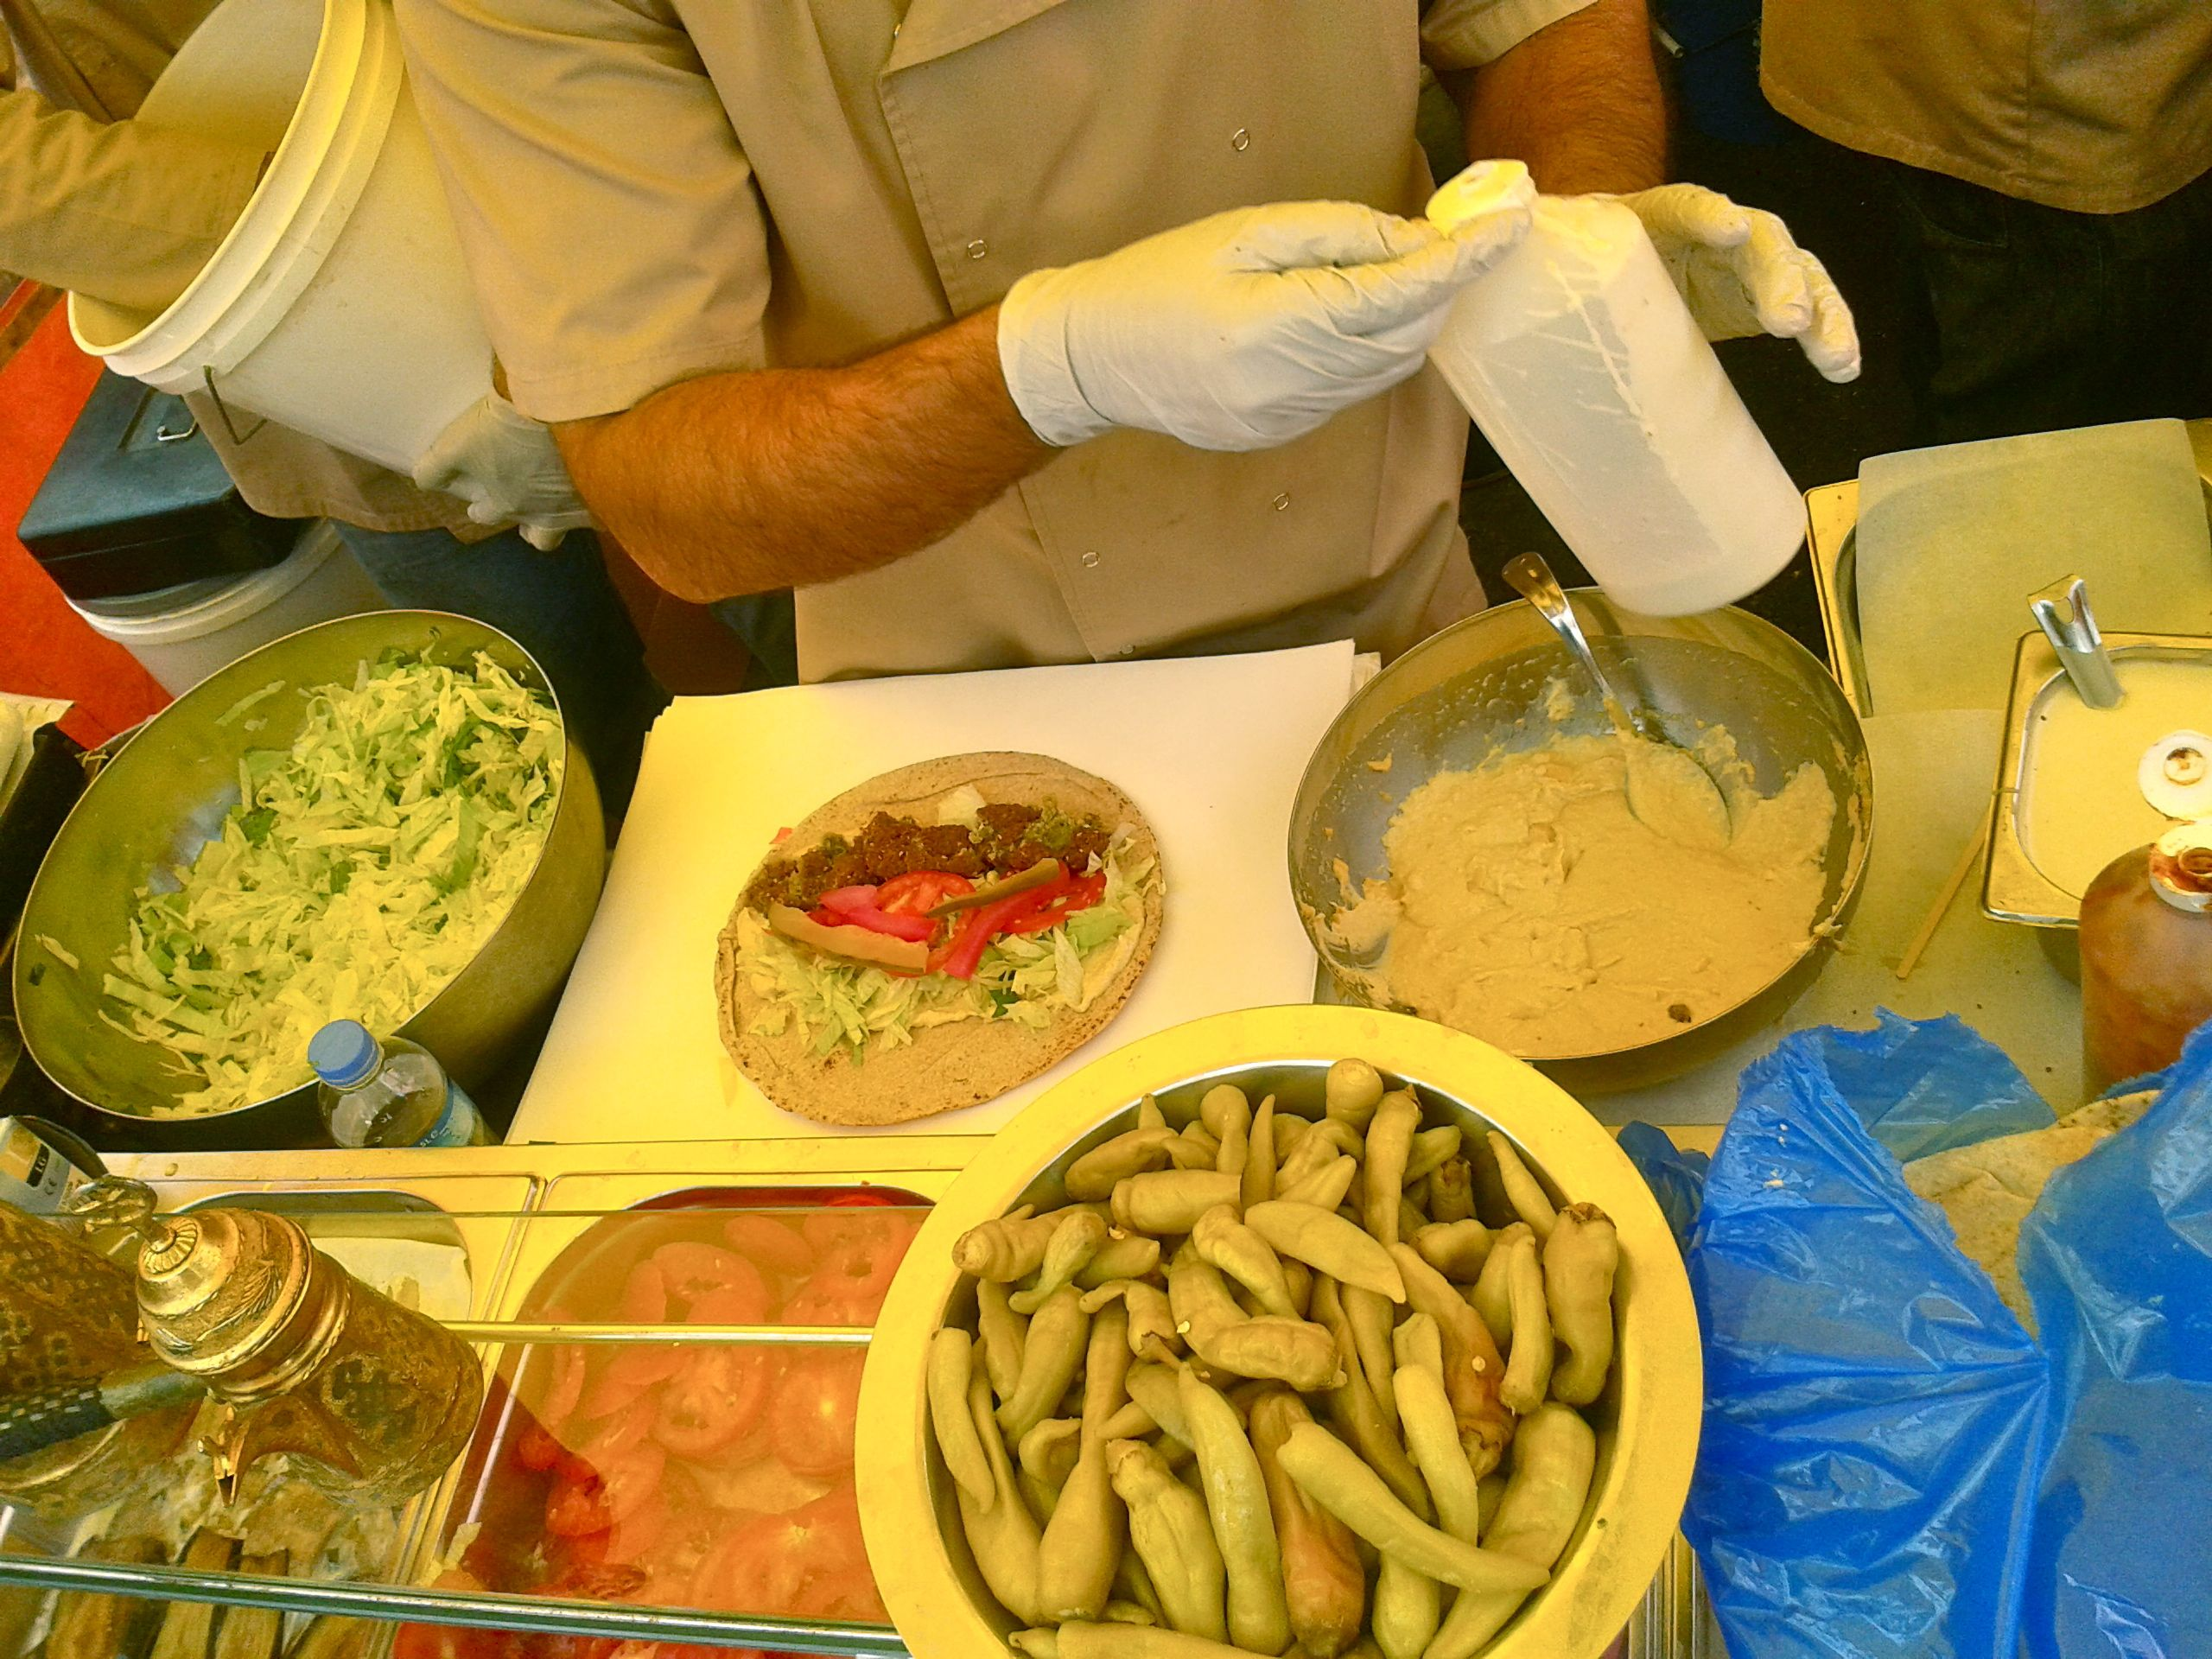 https://i1.wp.com/fatgayvegan.com/wp-content/uploads/2013/08/falafel-making.jpg?fit=2560%2C1920